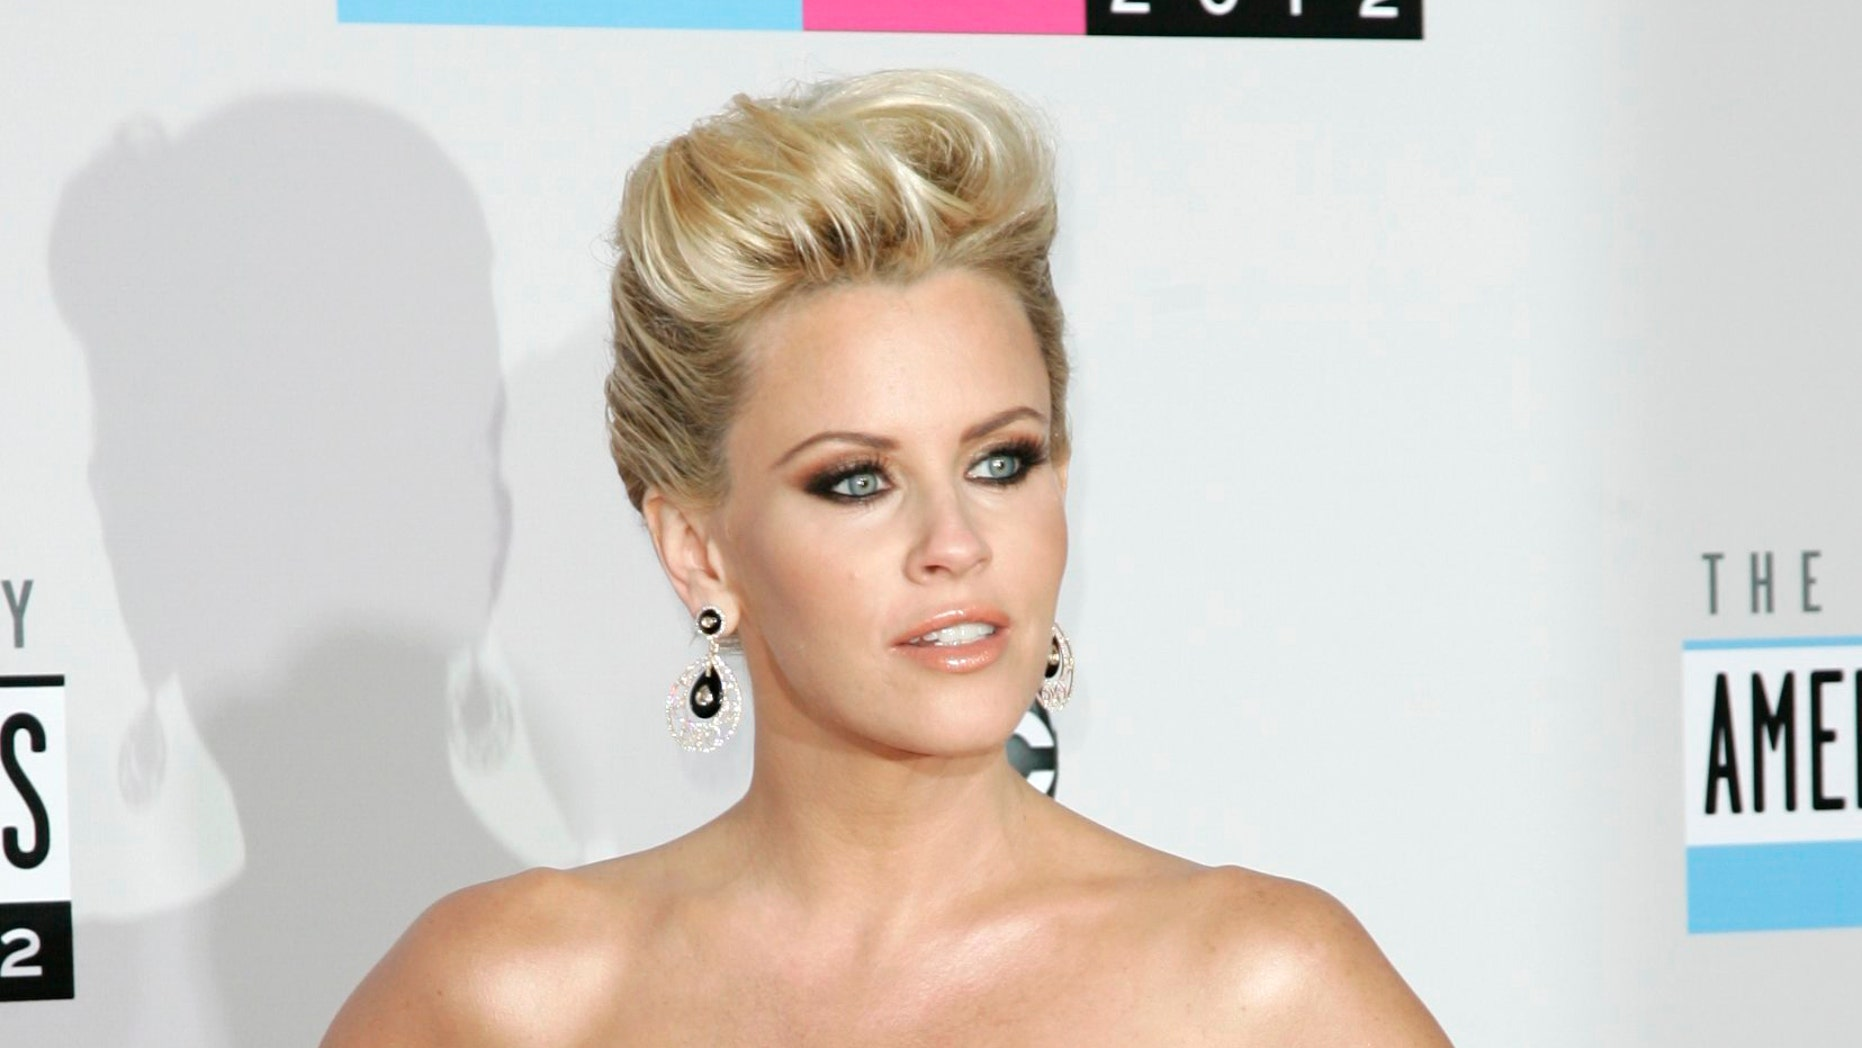 Nov 18, 2012. Actress Jenny McCarthy arrives at the 40th American Music Awards in Los Angeles, California.